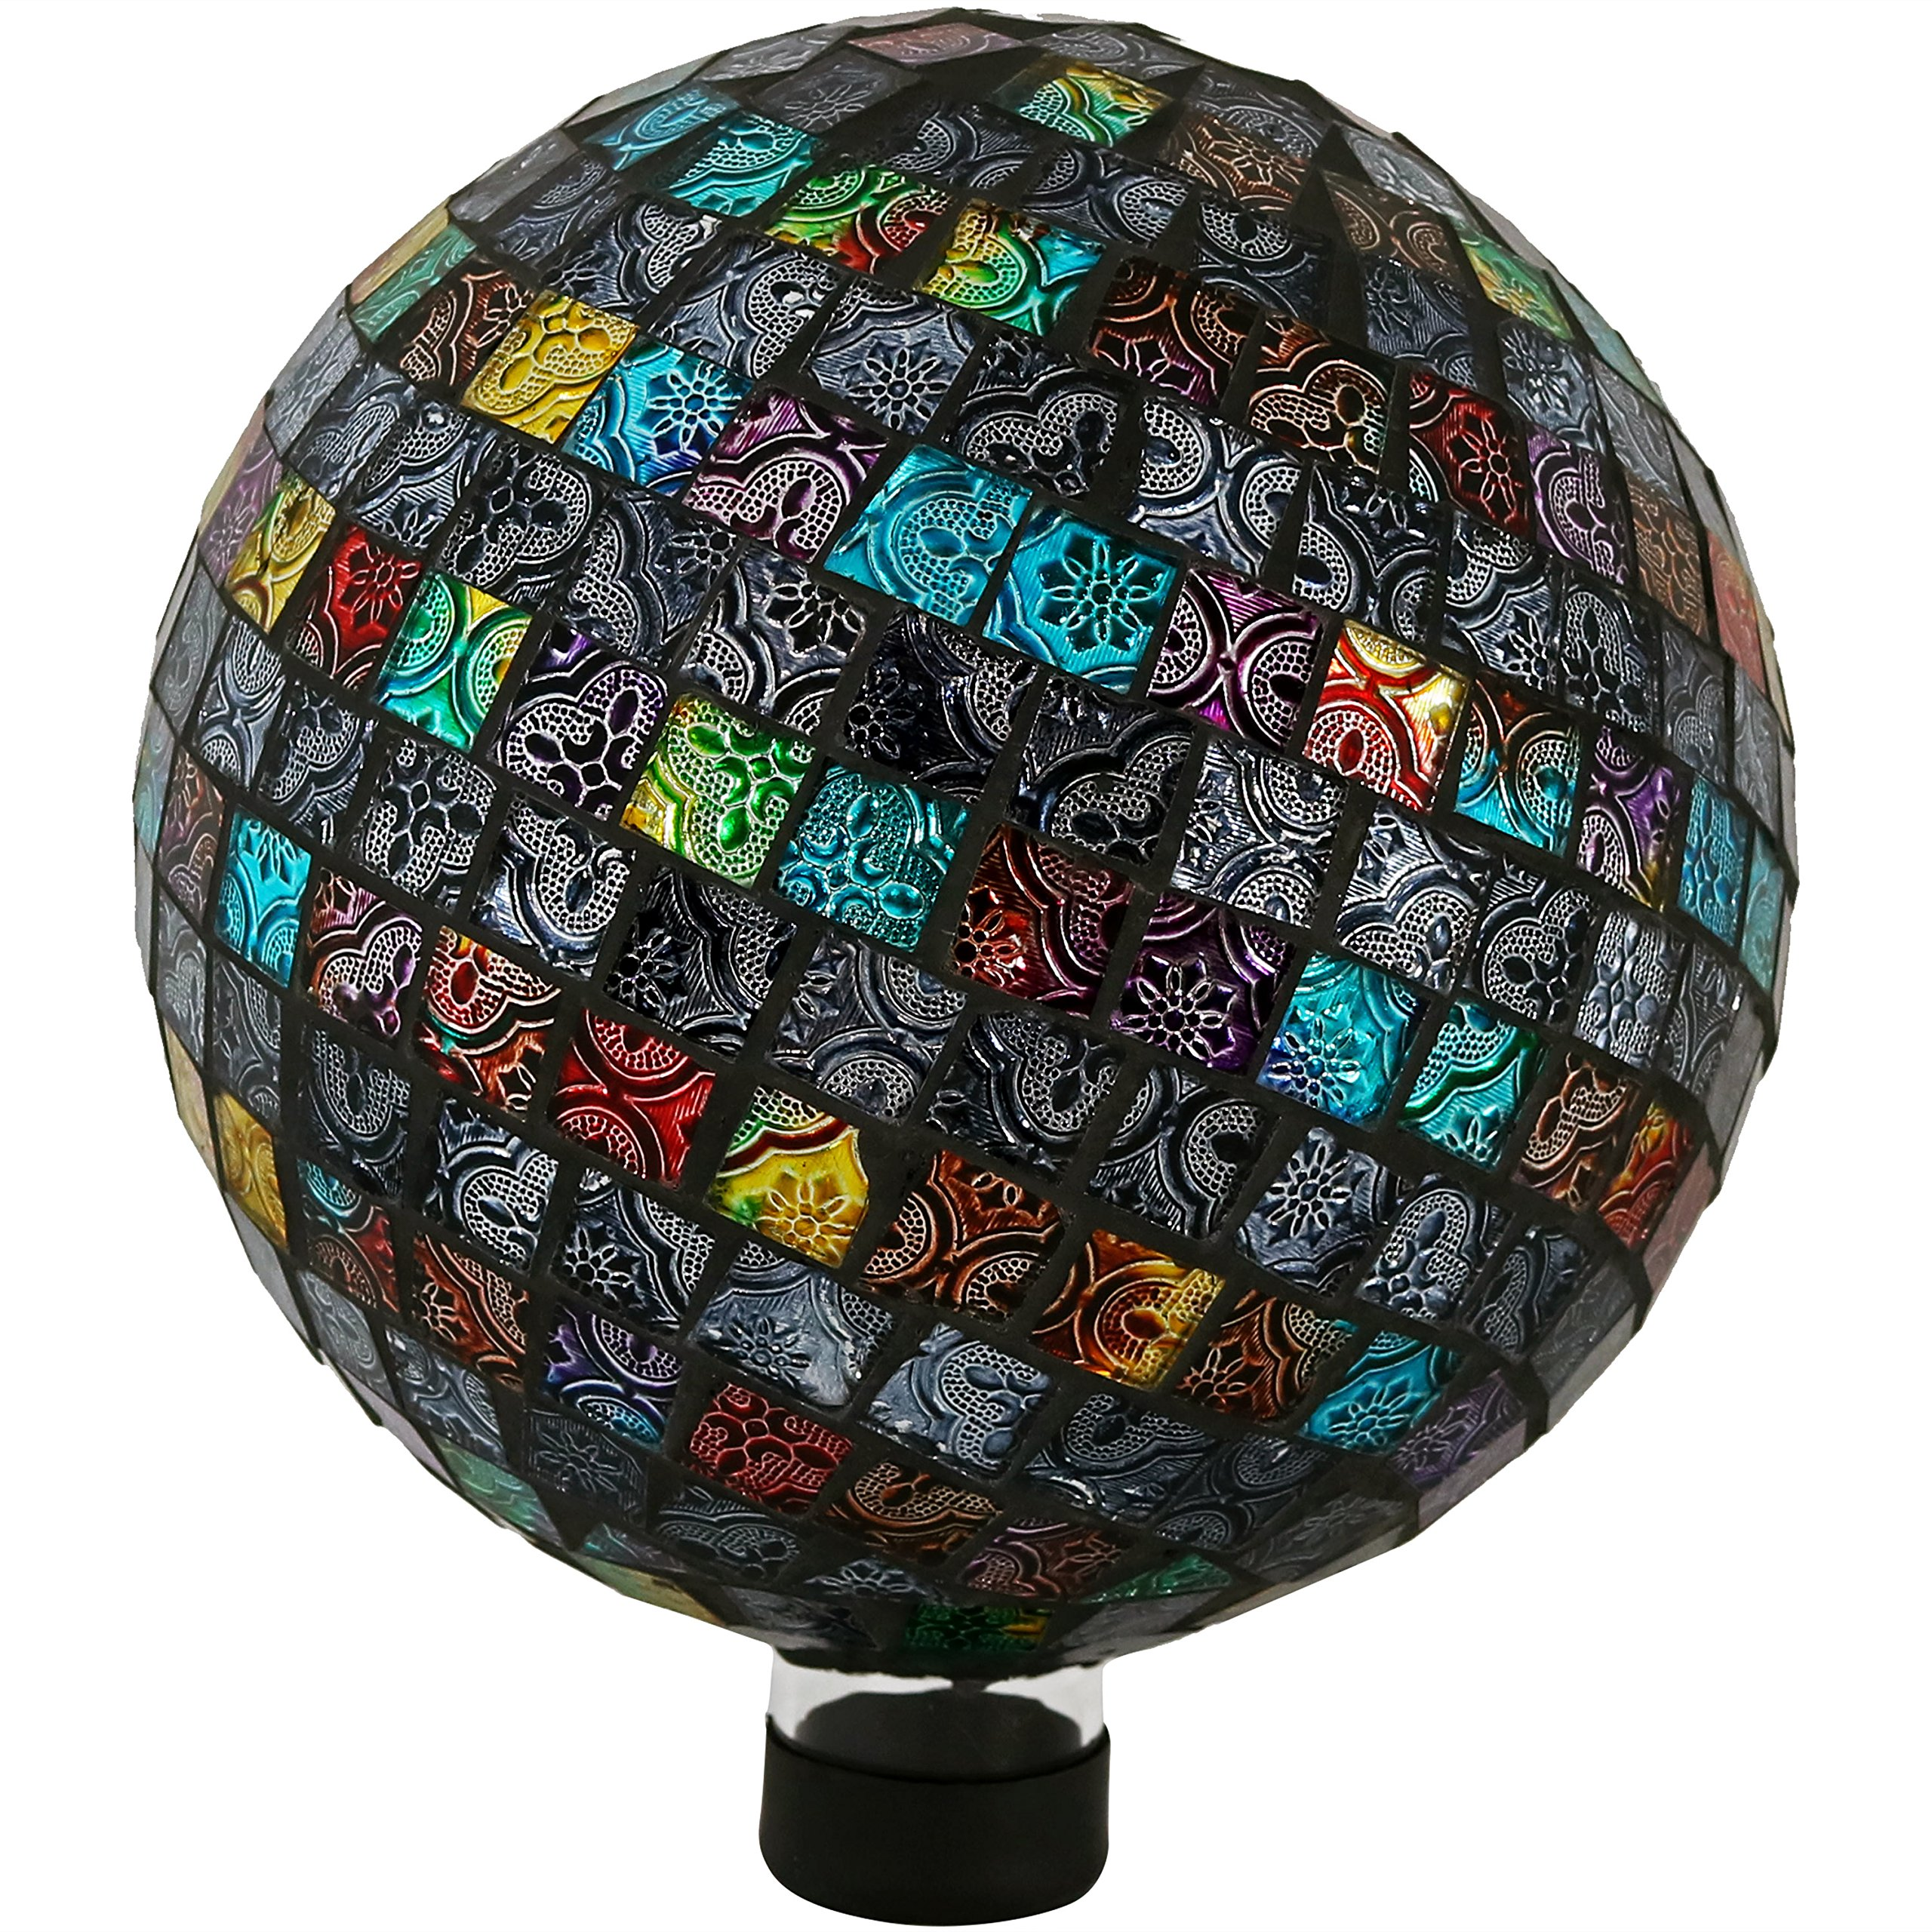 Sunnydaze Tiled Mosaic Gazing Globe Glass Garden Ball, Outdoor Lawn and Yard Ornament, Multi-Colored, 10-Inch